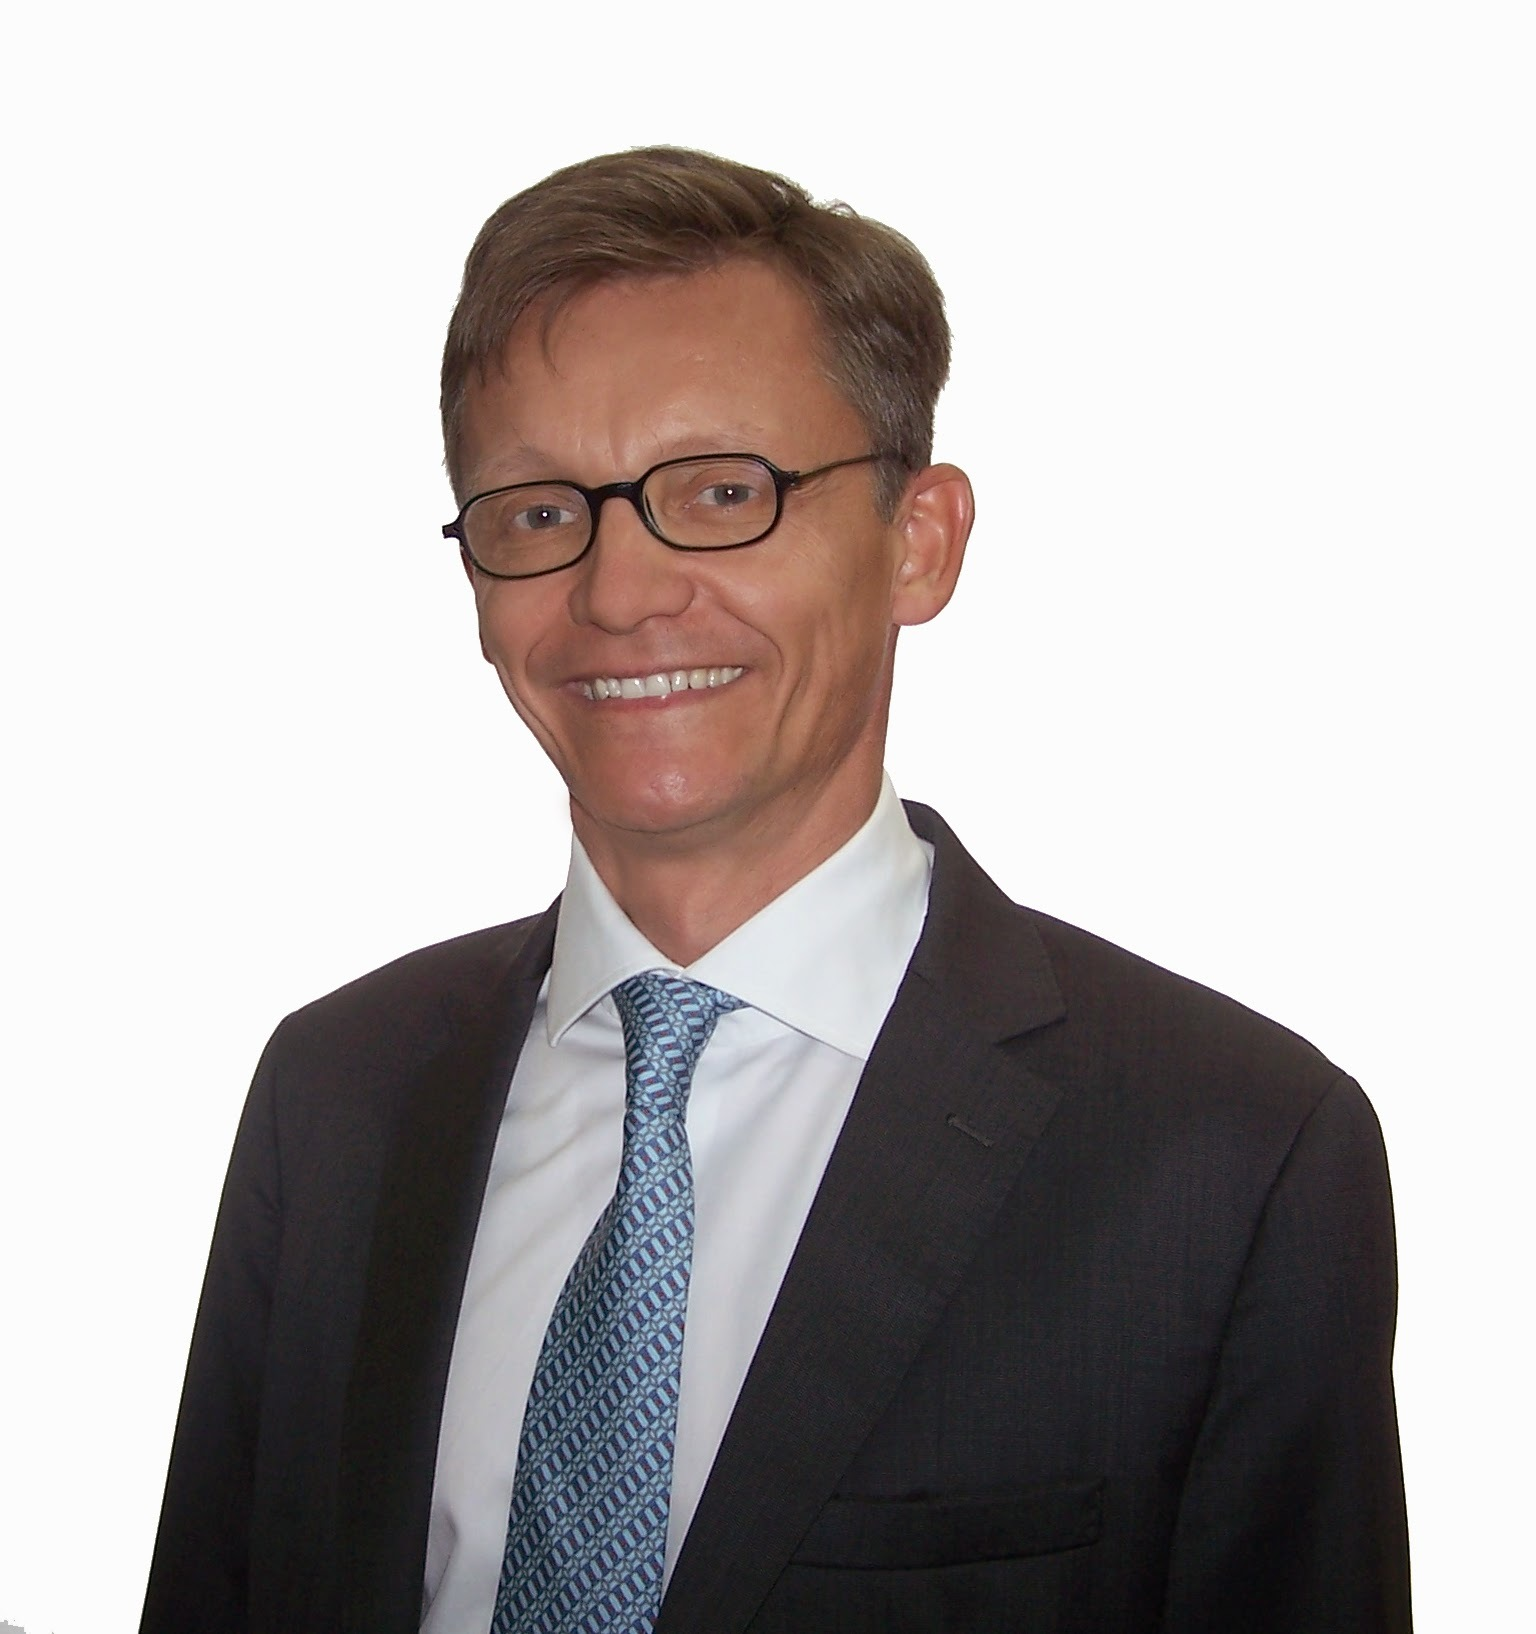 Matthieu de Tugny, senior vice-president and head of offshore BV